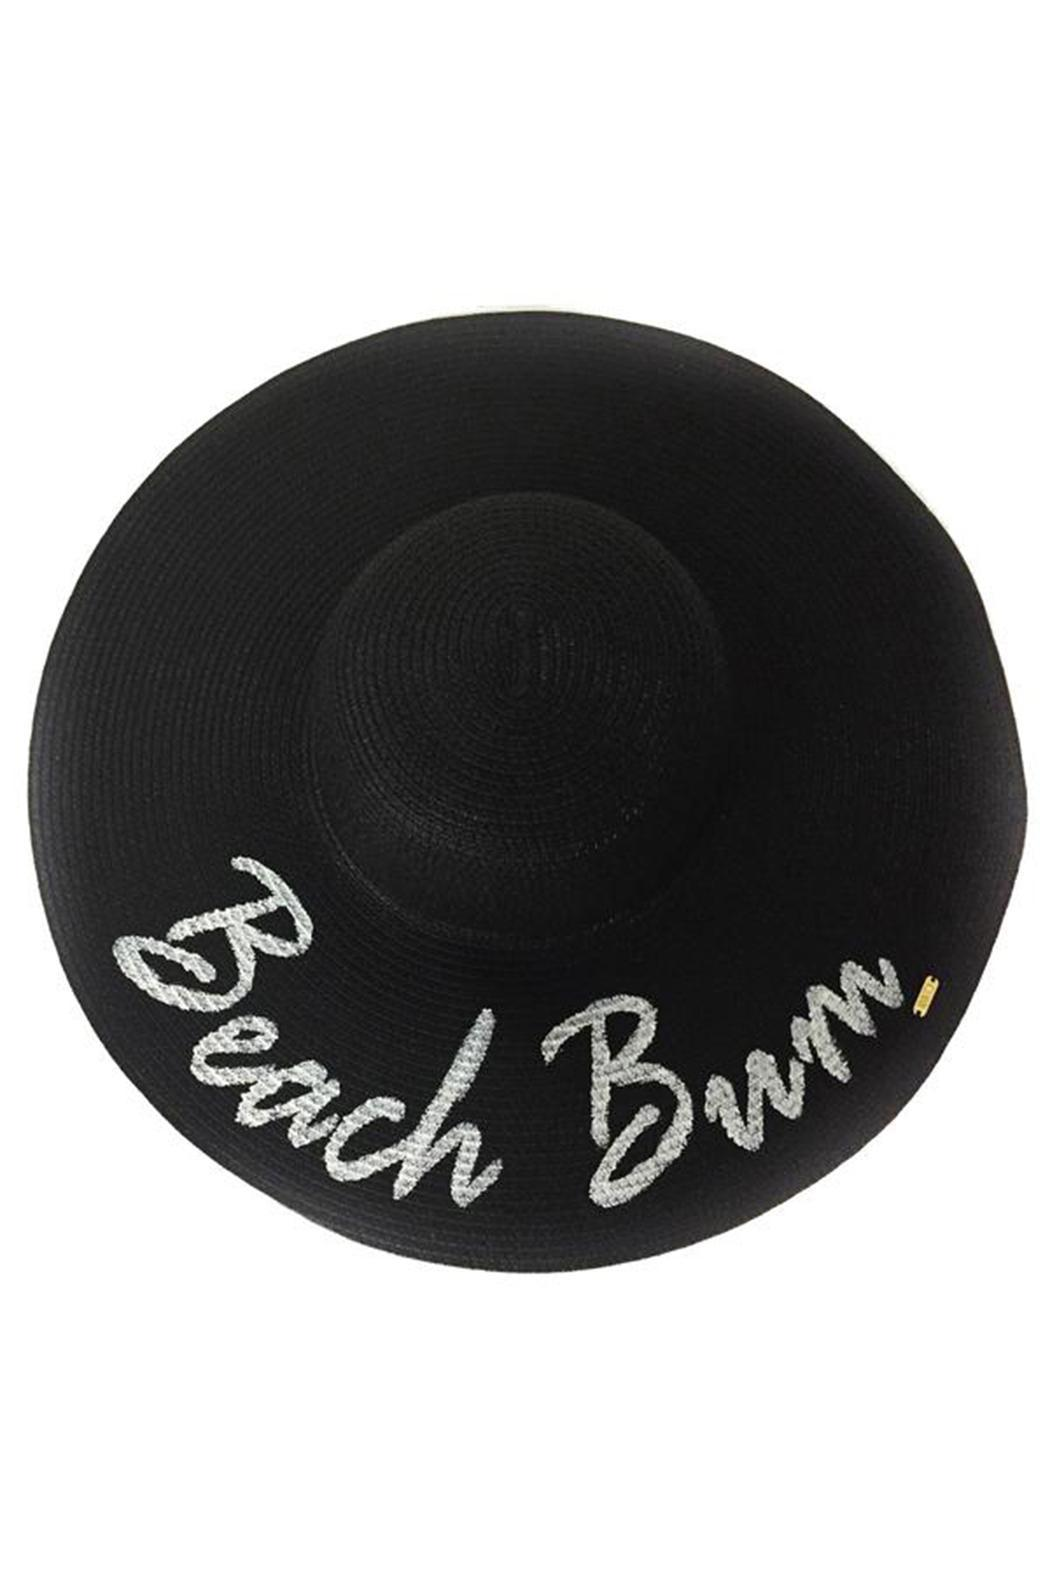 Abaco Beach Company Beach Bum Hat From Canada By Kallone